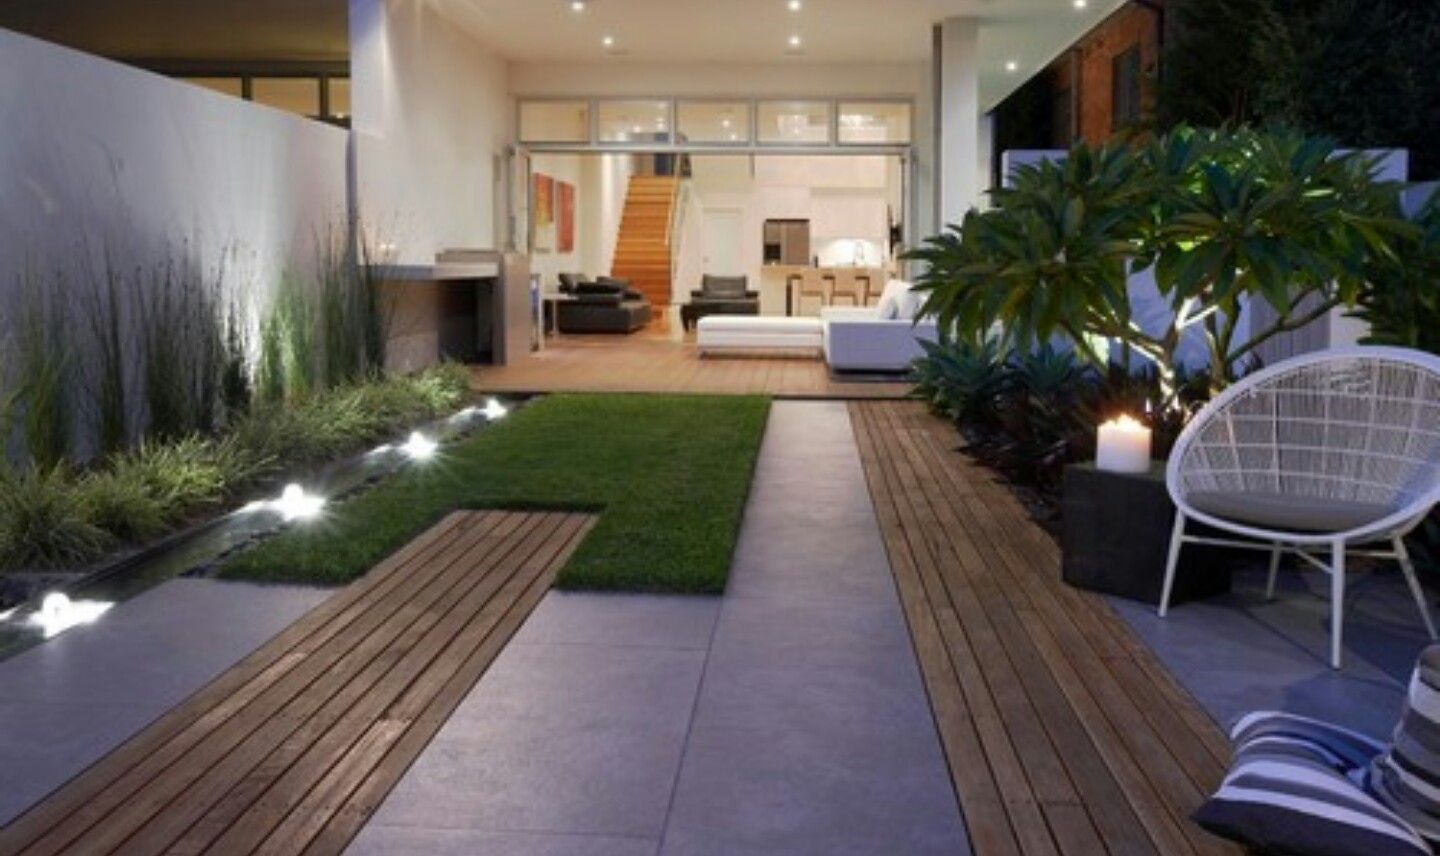 Pin by lora on Дивный сад | Pinterest | Outdoor living, Gardens and ...